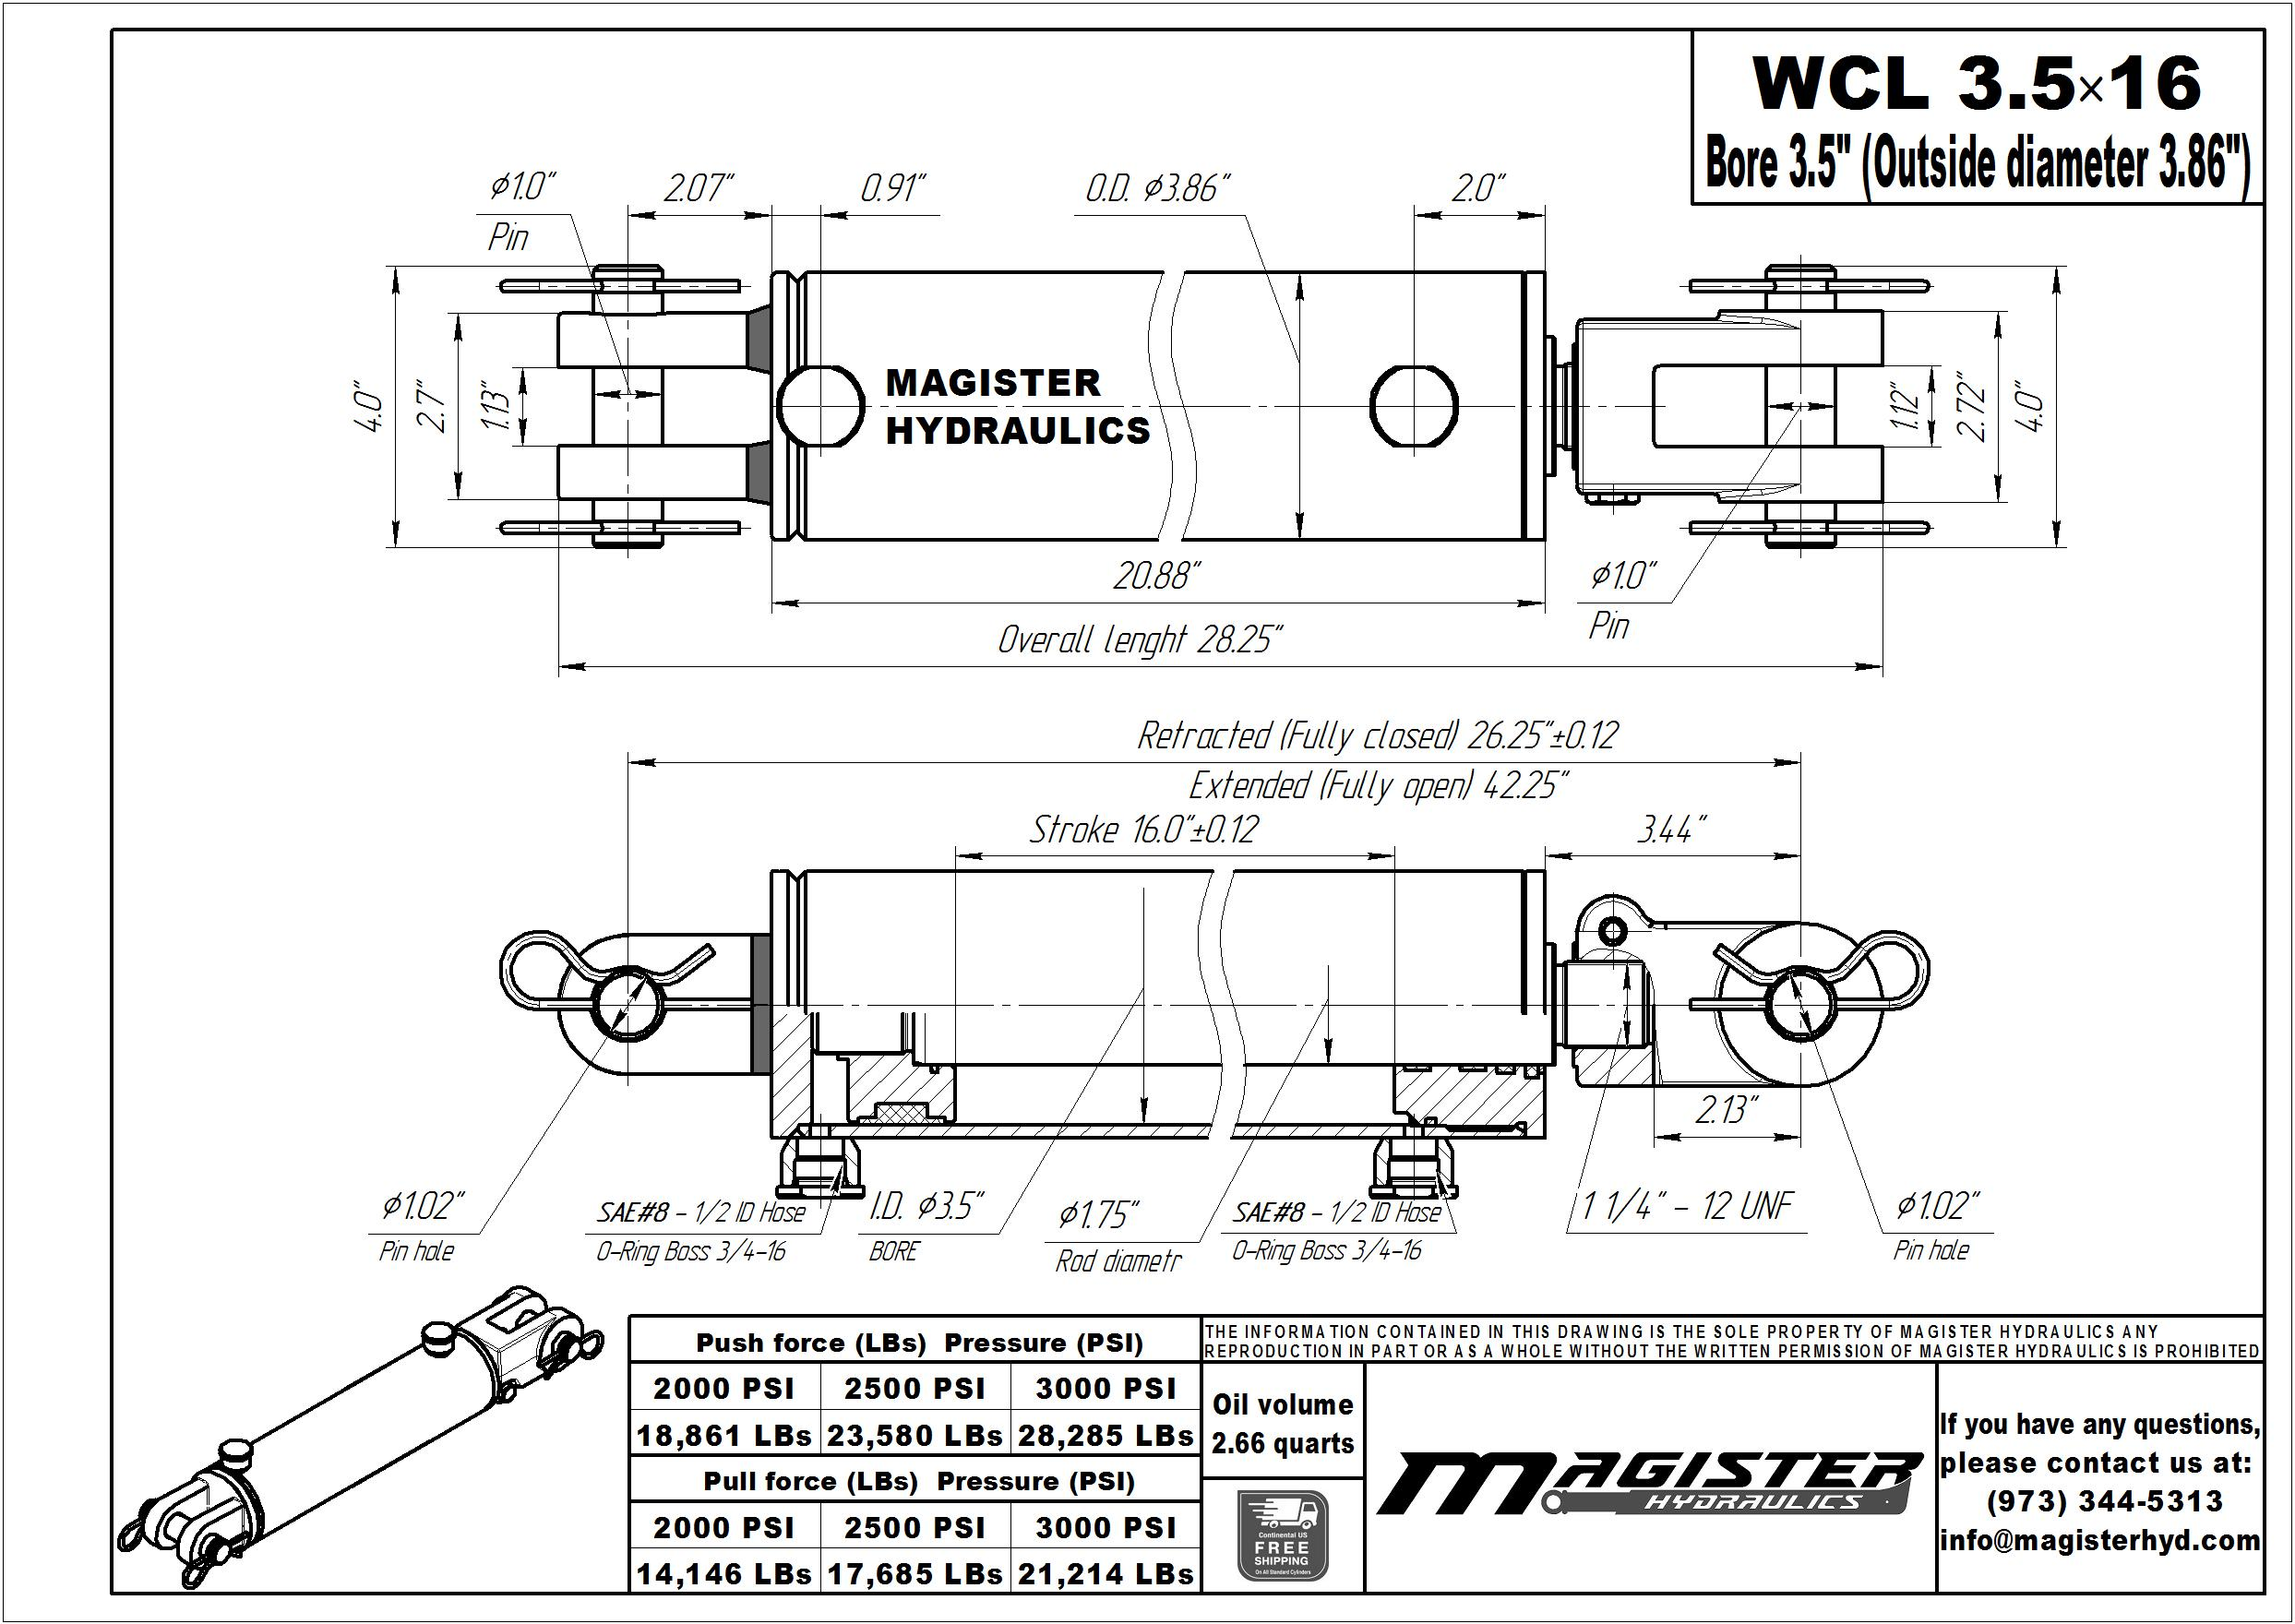 3.5 bore x 16 stroke hydraulic cylinder, welded clevis double acting cylinder | Magister Hydraulics